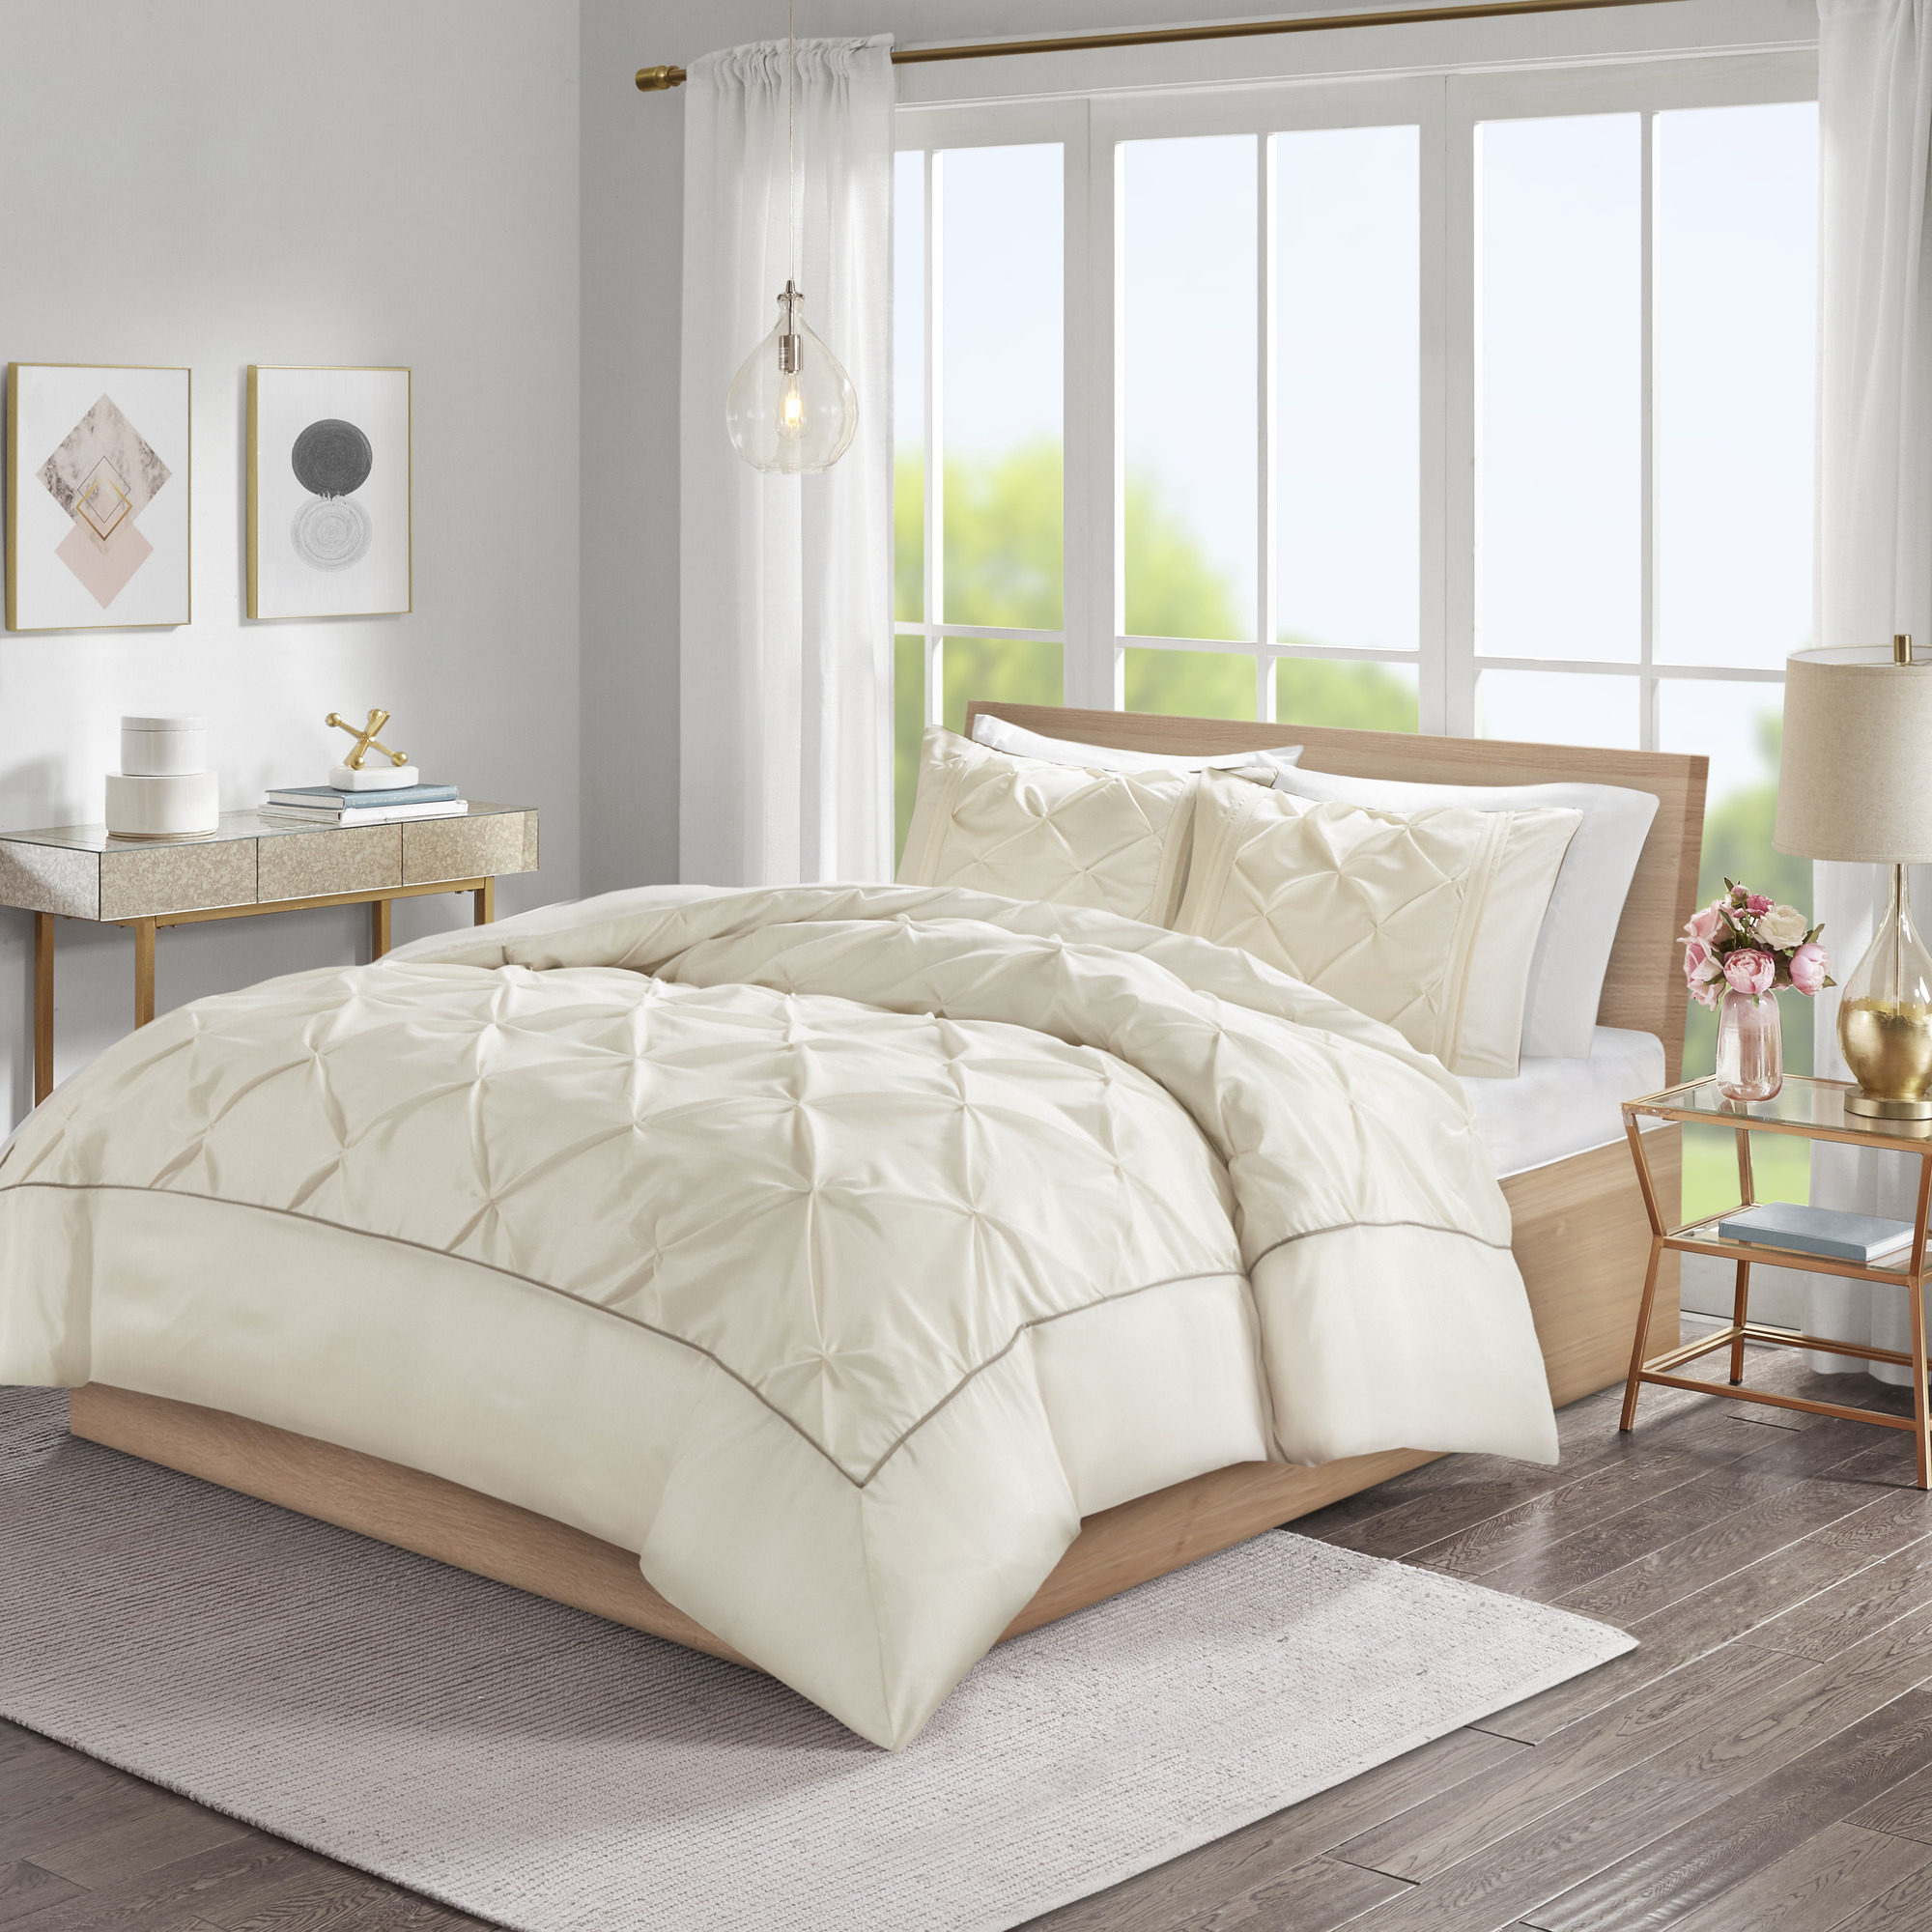 Home Essence Piedmont 3 Piece Tufted Duvet Cover Set